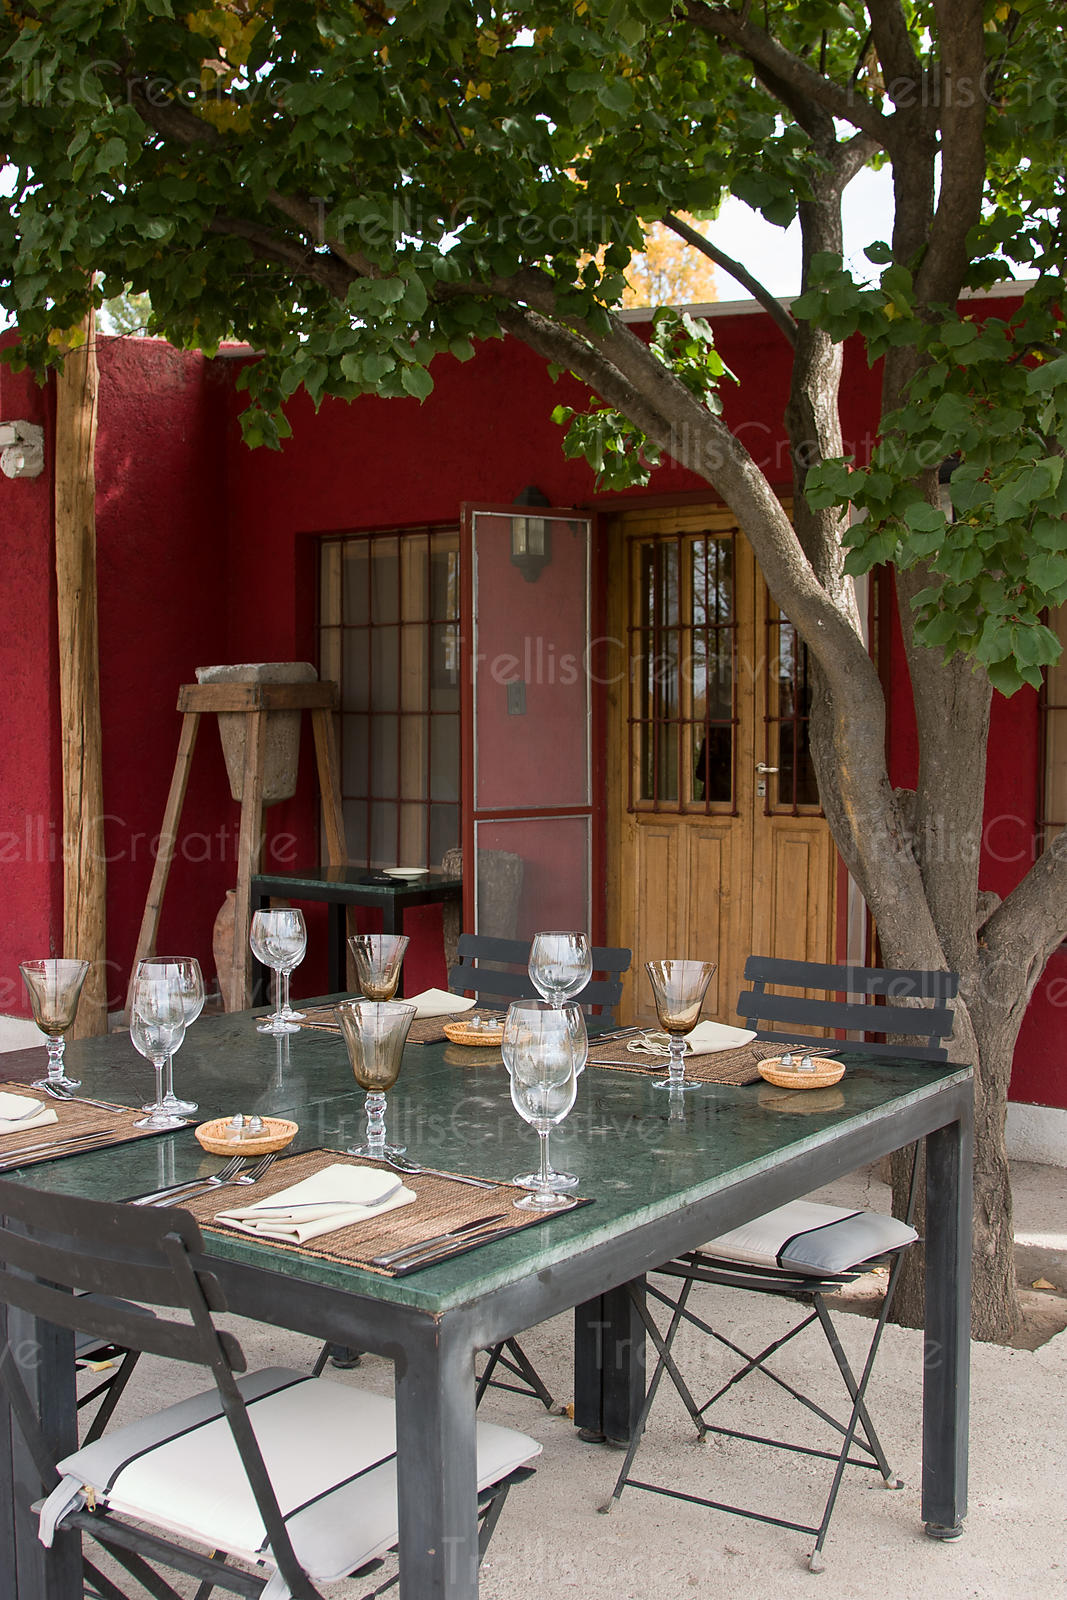 Table set for four in patio with shade tree. Red wall background, double wooden doors.